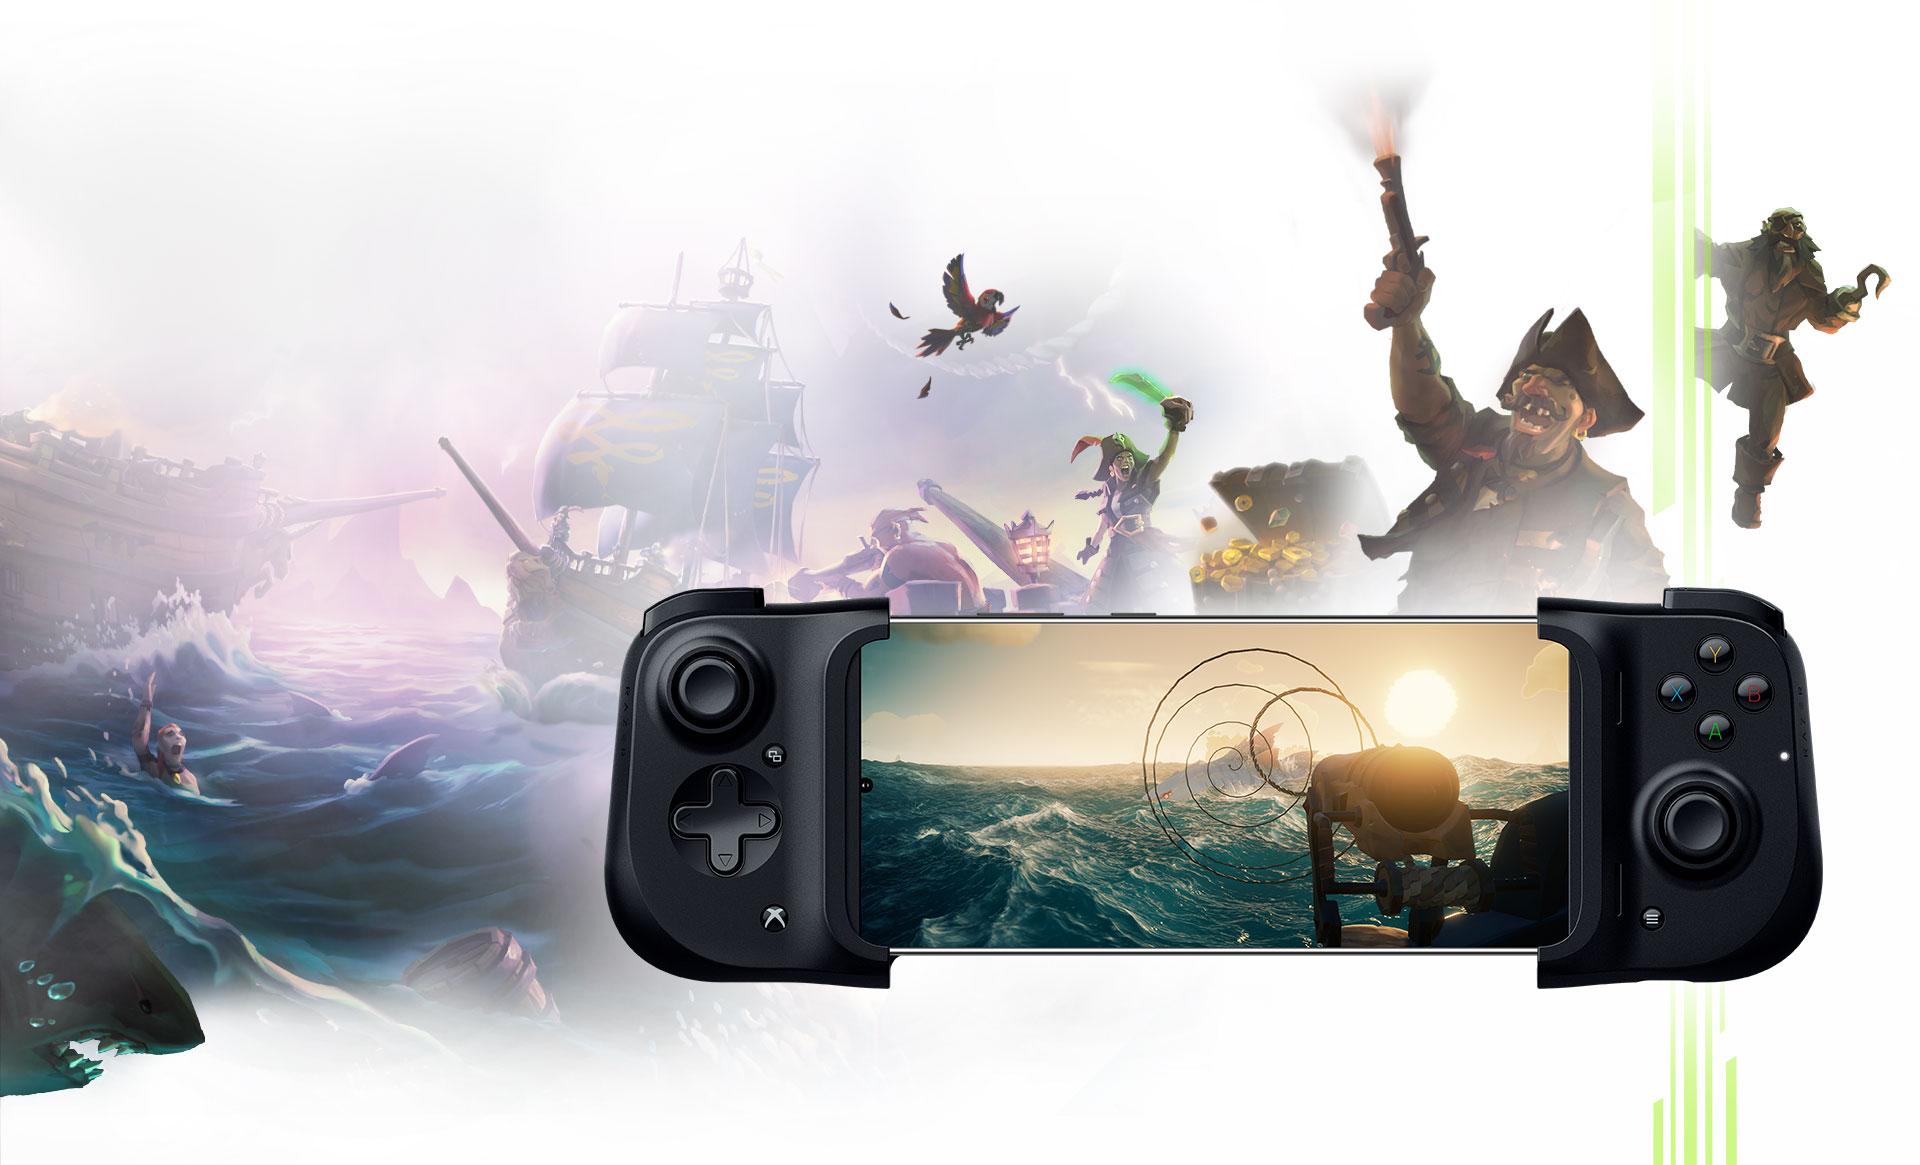 A Samsung Razer Kishi controller attached to a phone showing Sea of Thieves gameplay